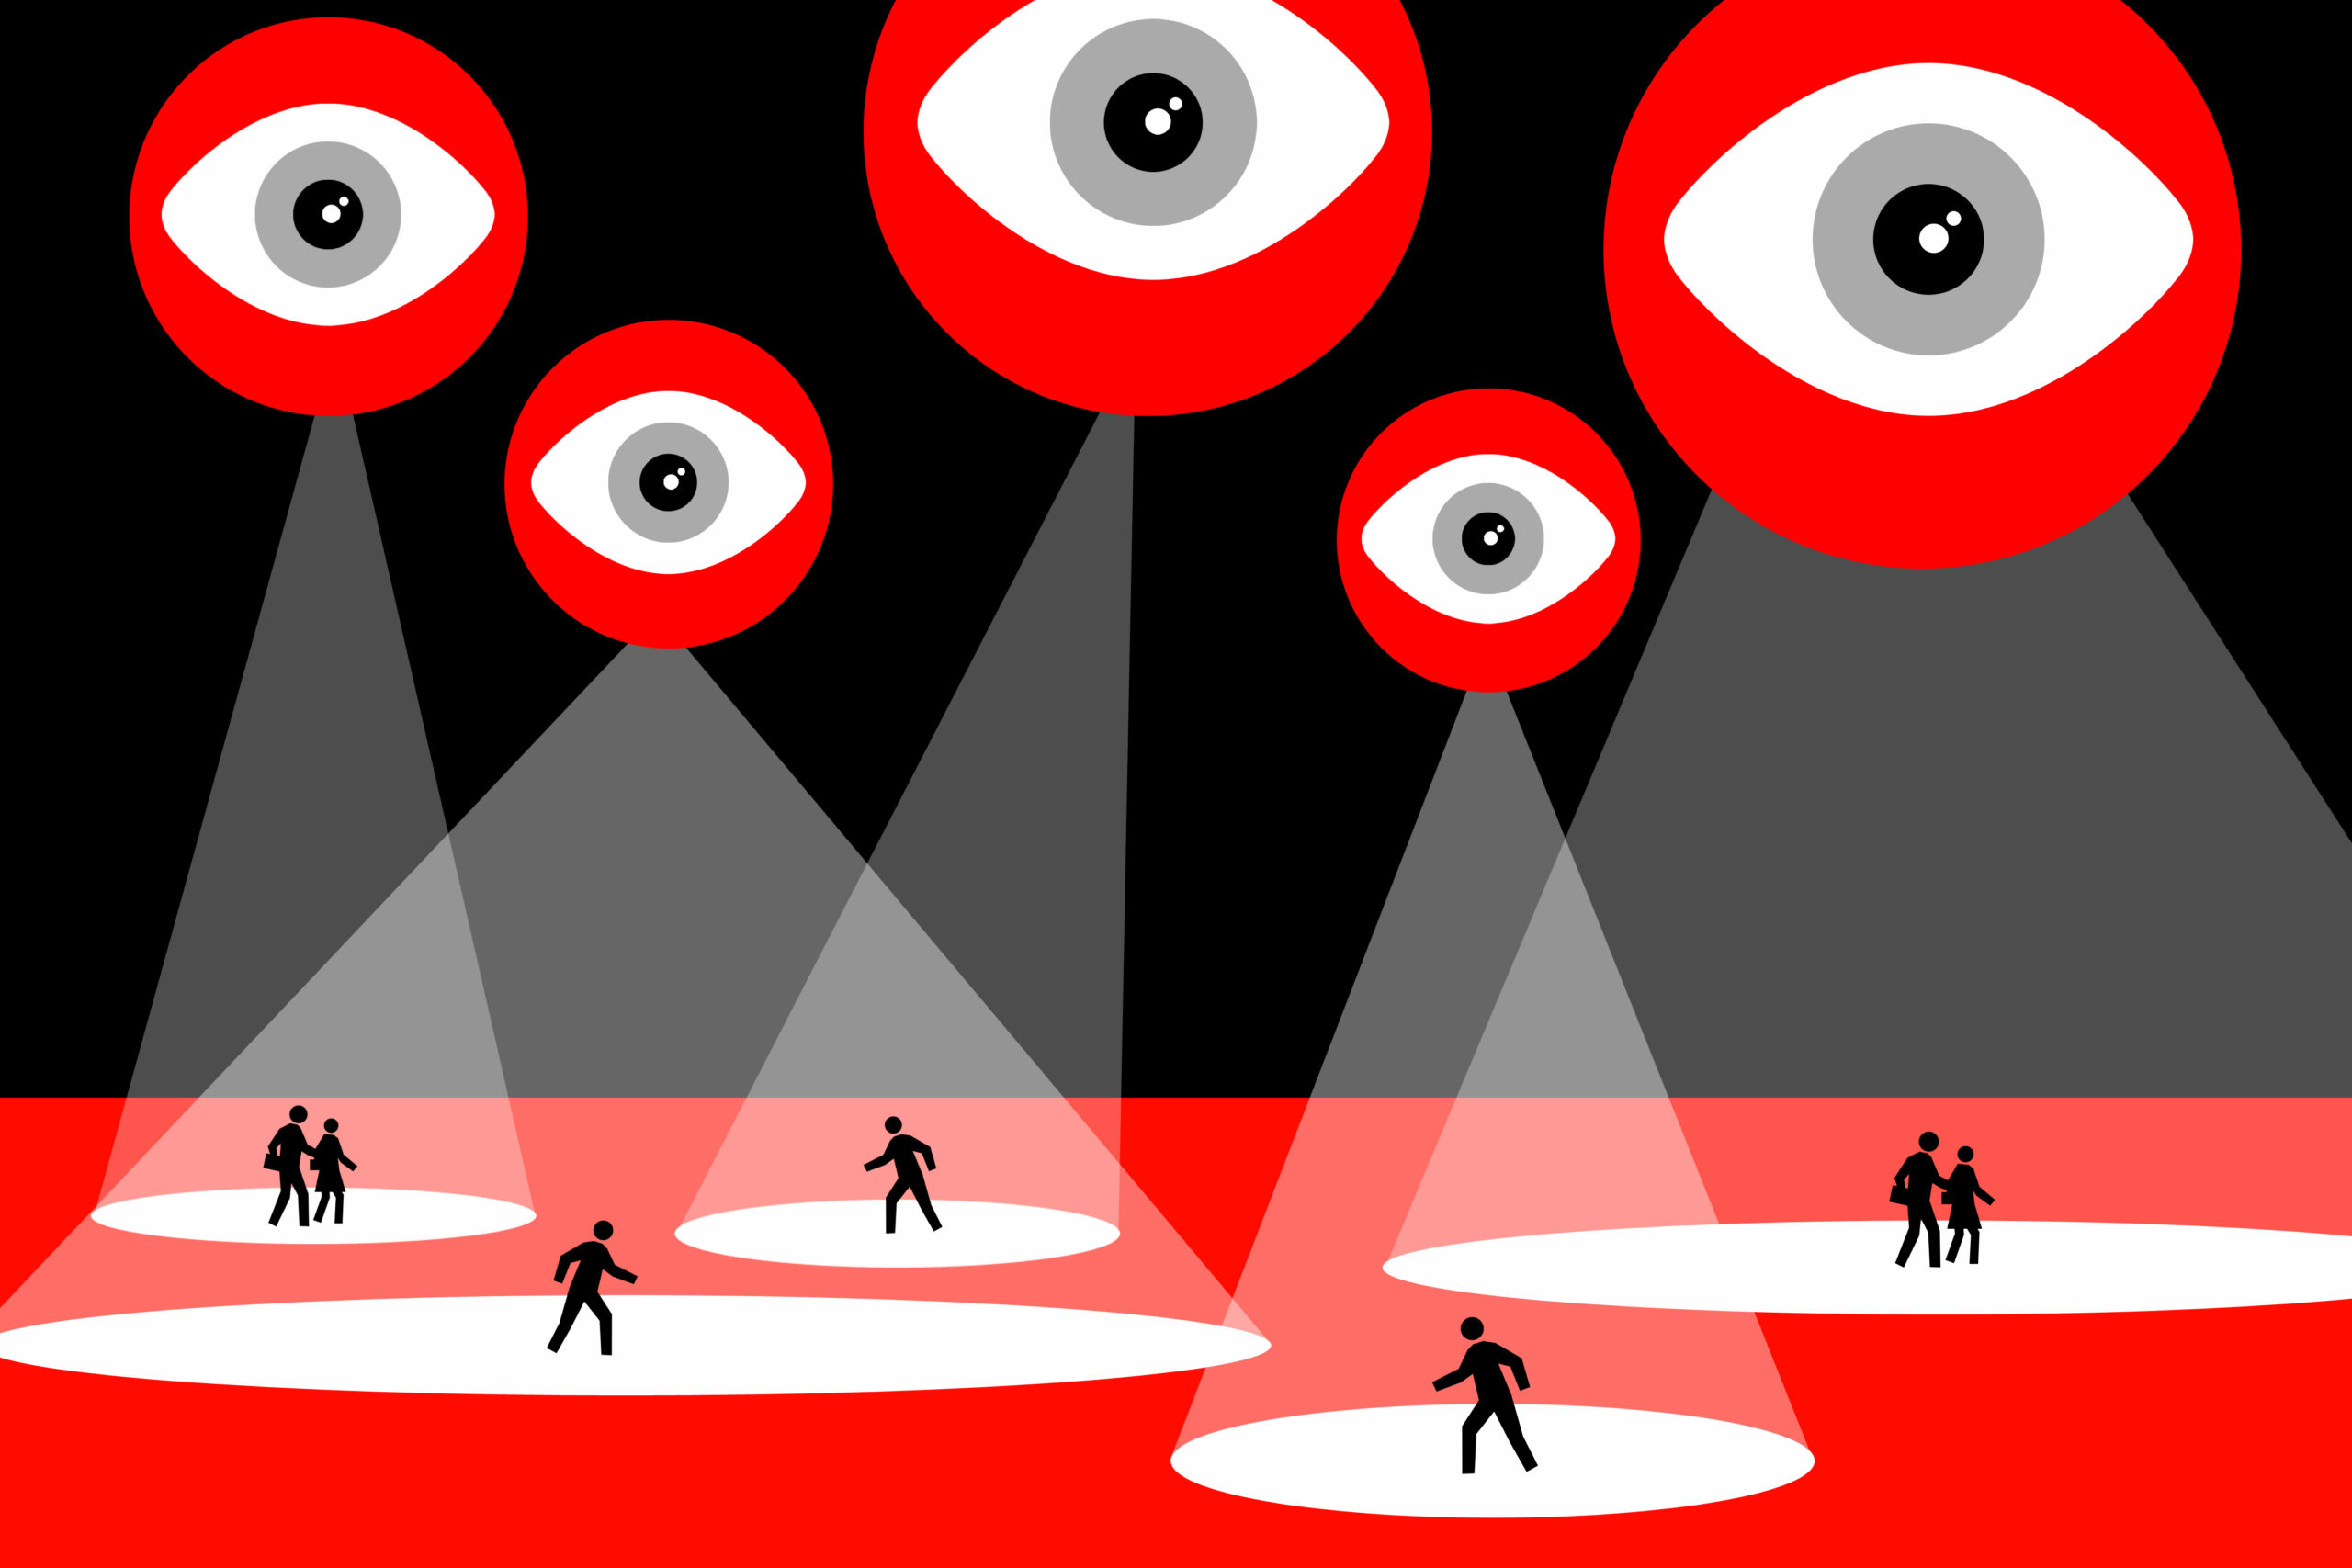 2084 vs 1984: The Difference AI Could Make to Big Brother